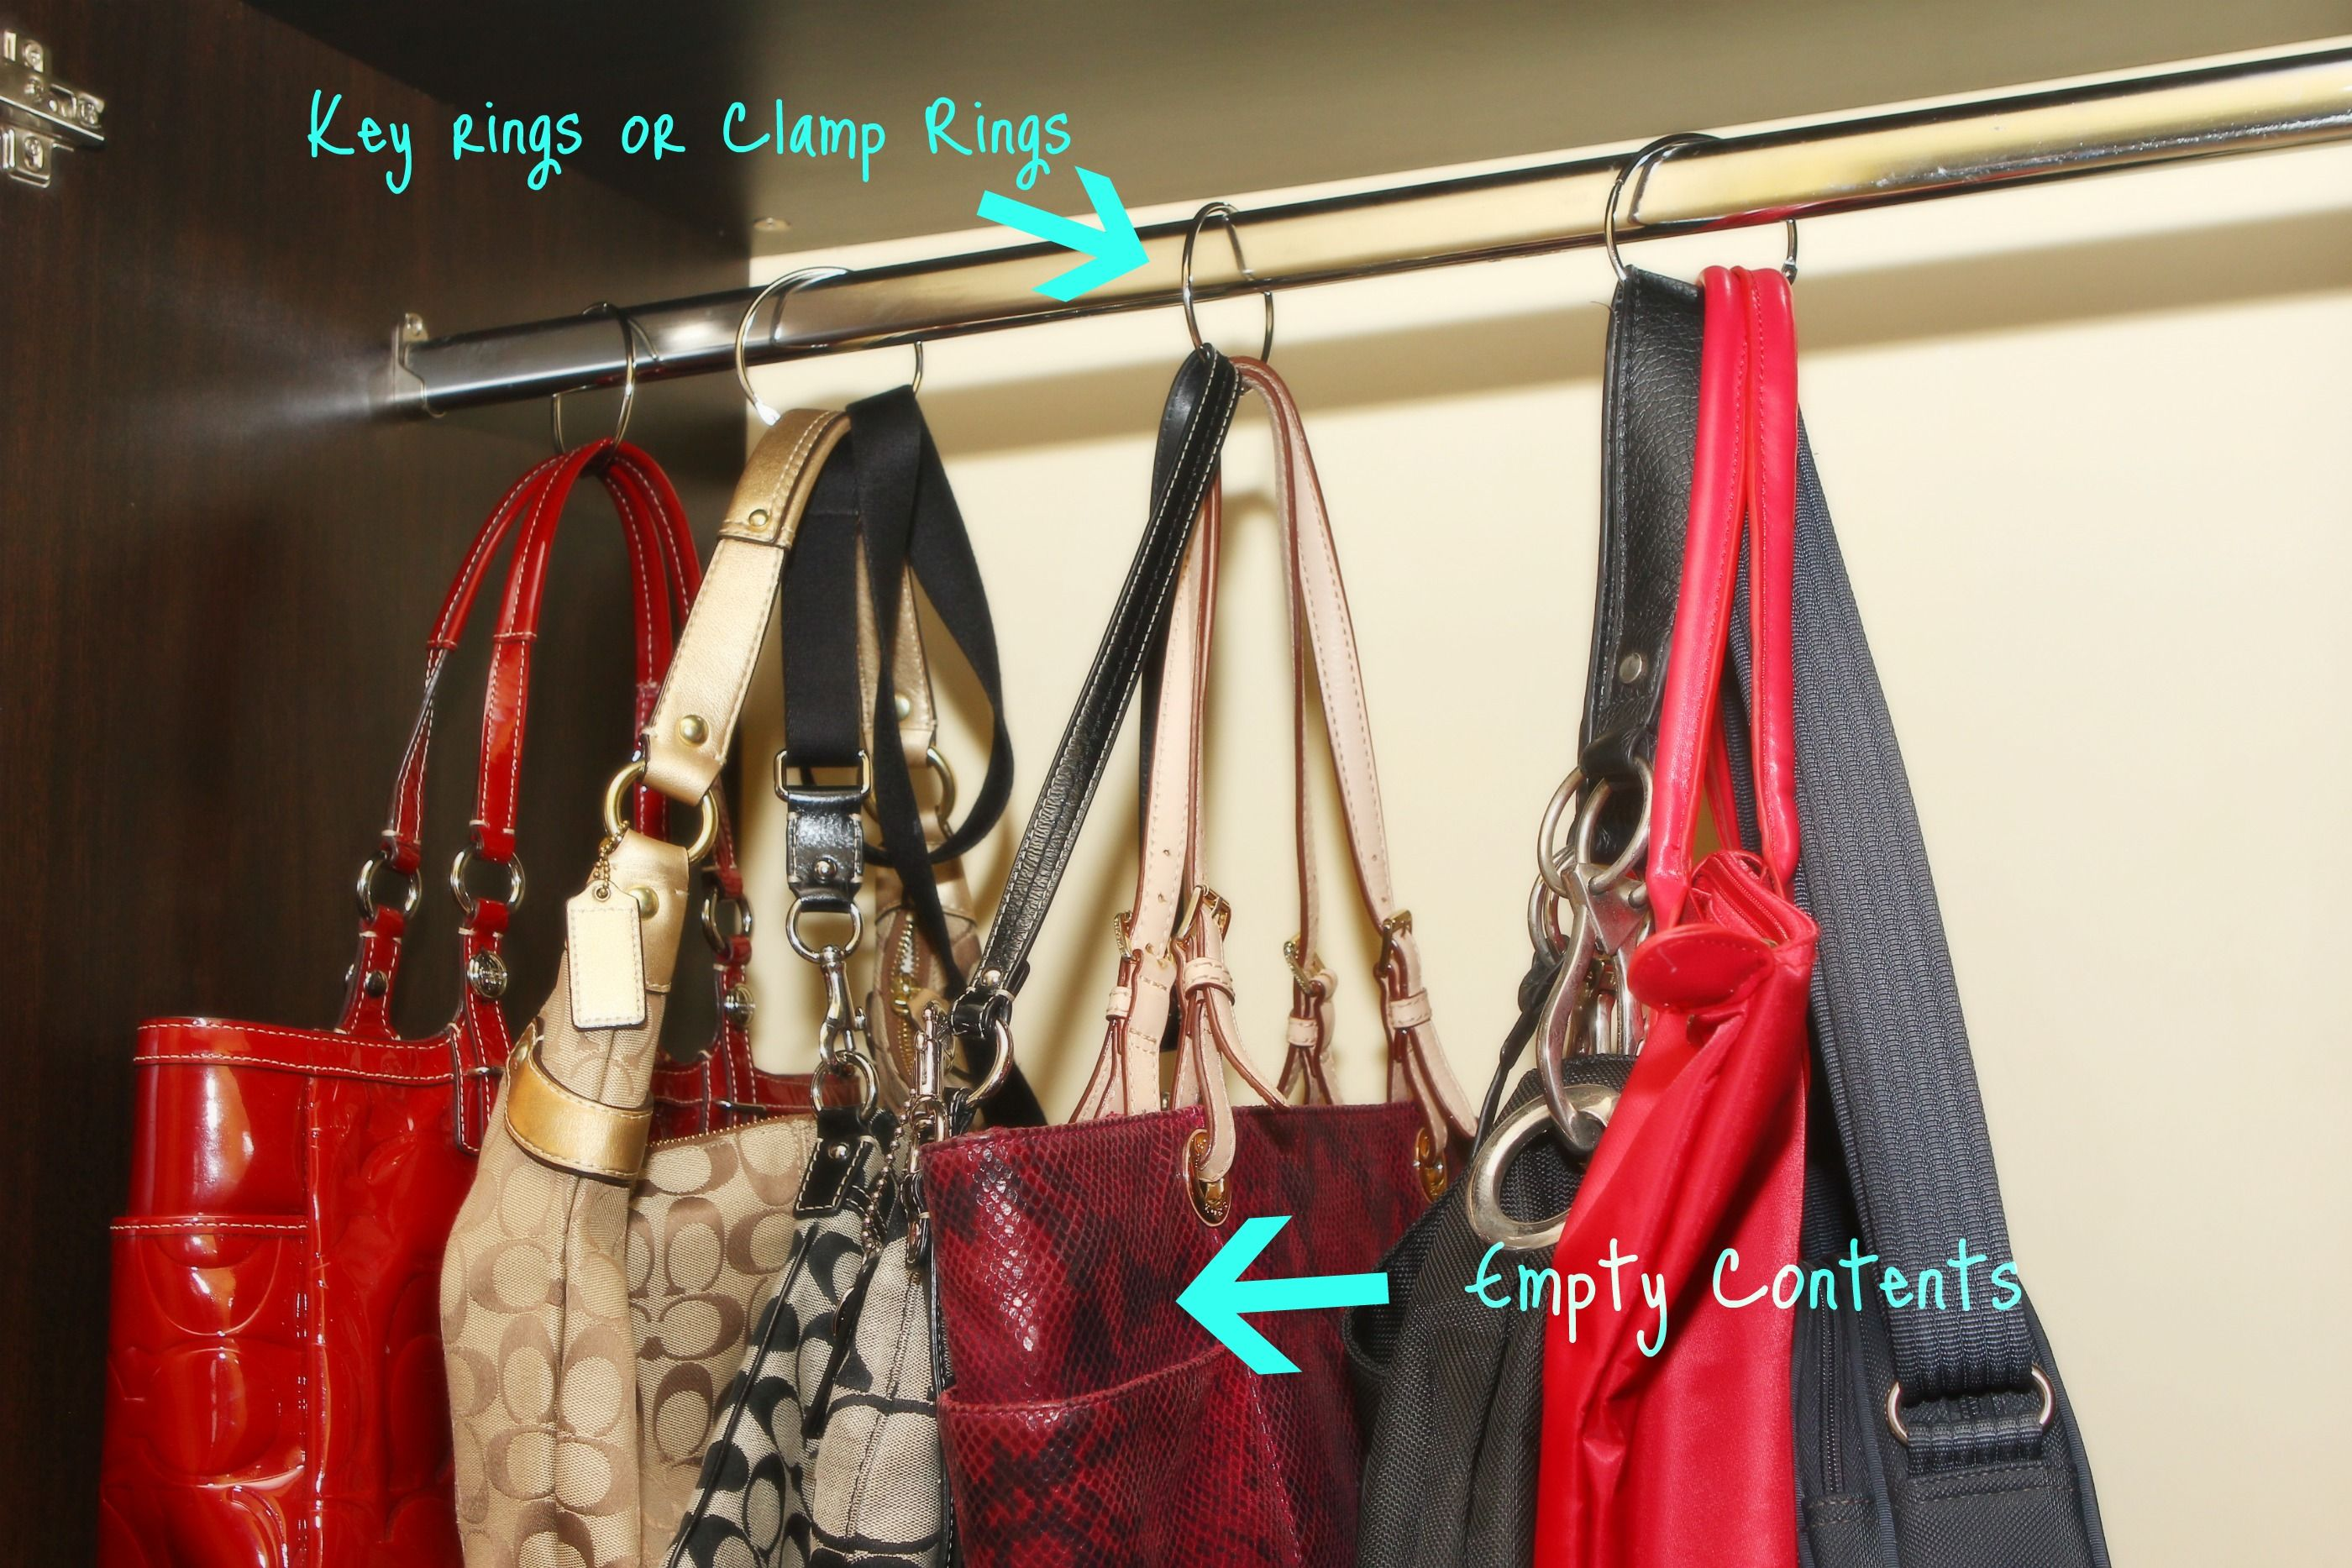 Organize Your Handbags I Would Use S Hooks Instead For Ease Of Removal Purse Organization Handbag Organization Organization